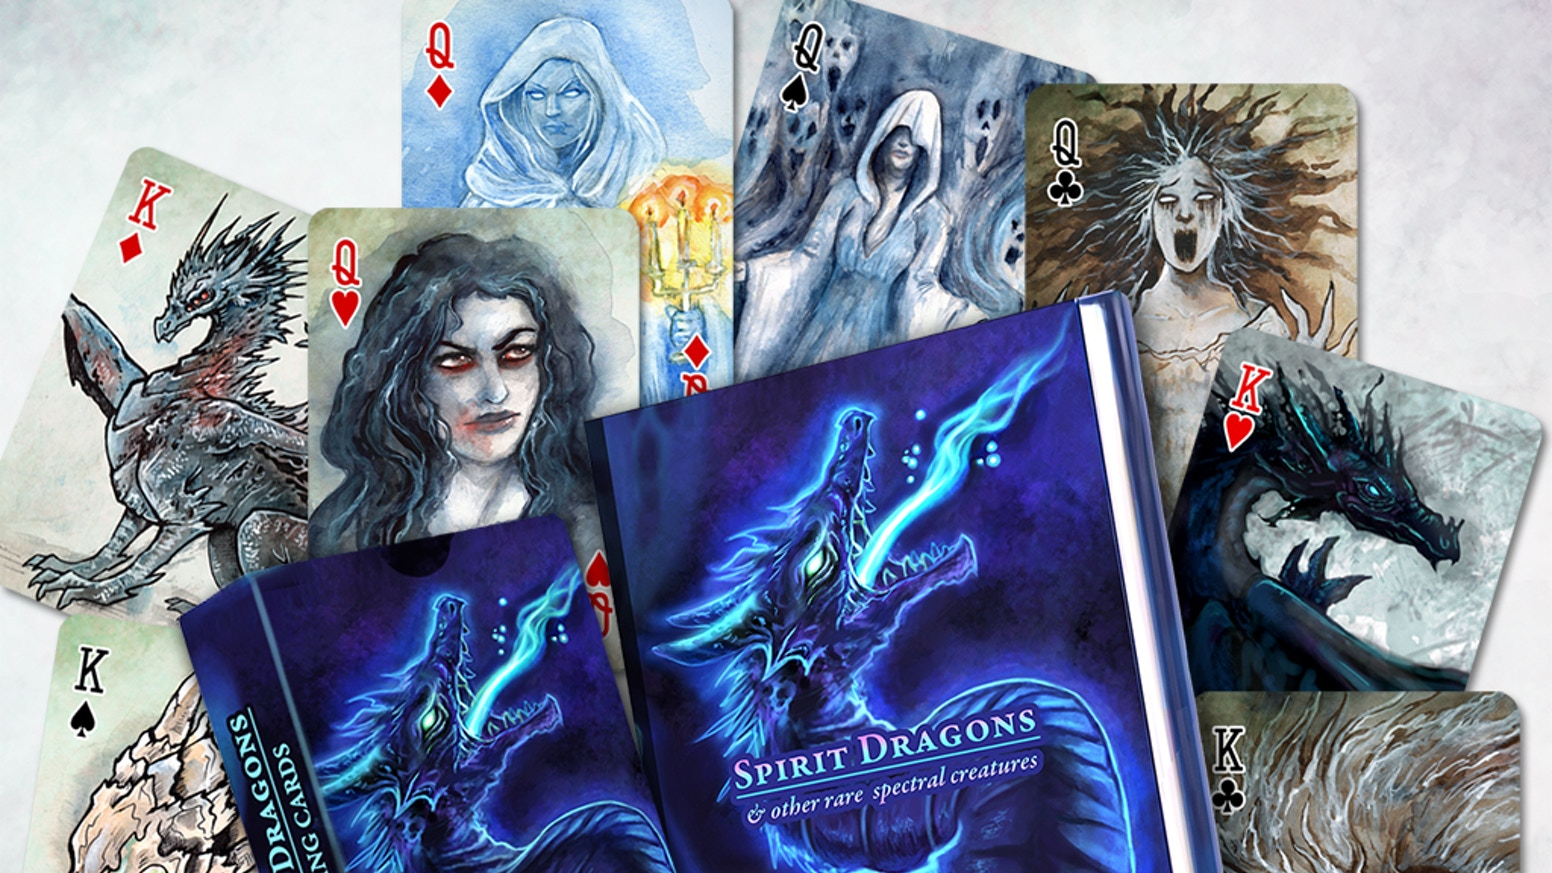 Playing cards, a fully illustrated book, and much more! Featuring Spirit Dragons & other rare spectral, undead, and ghostly creatures!